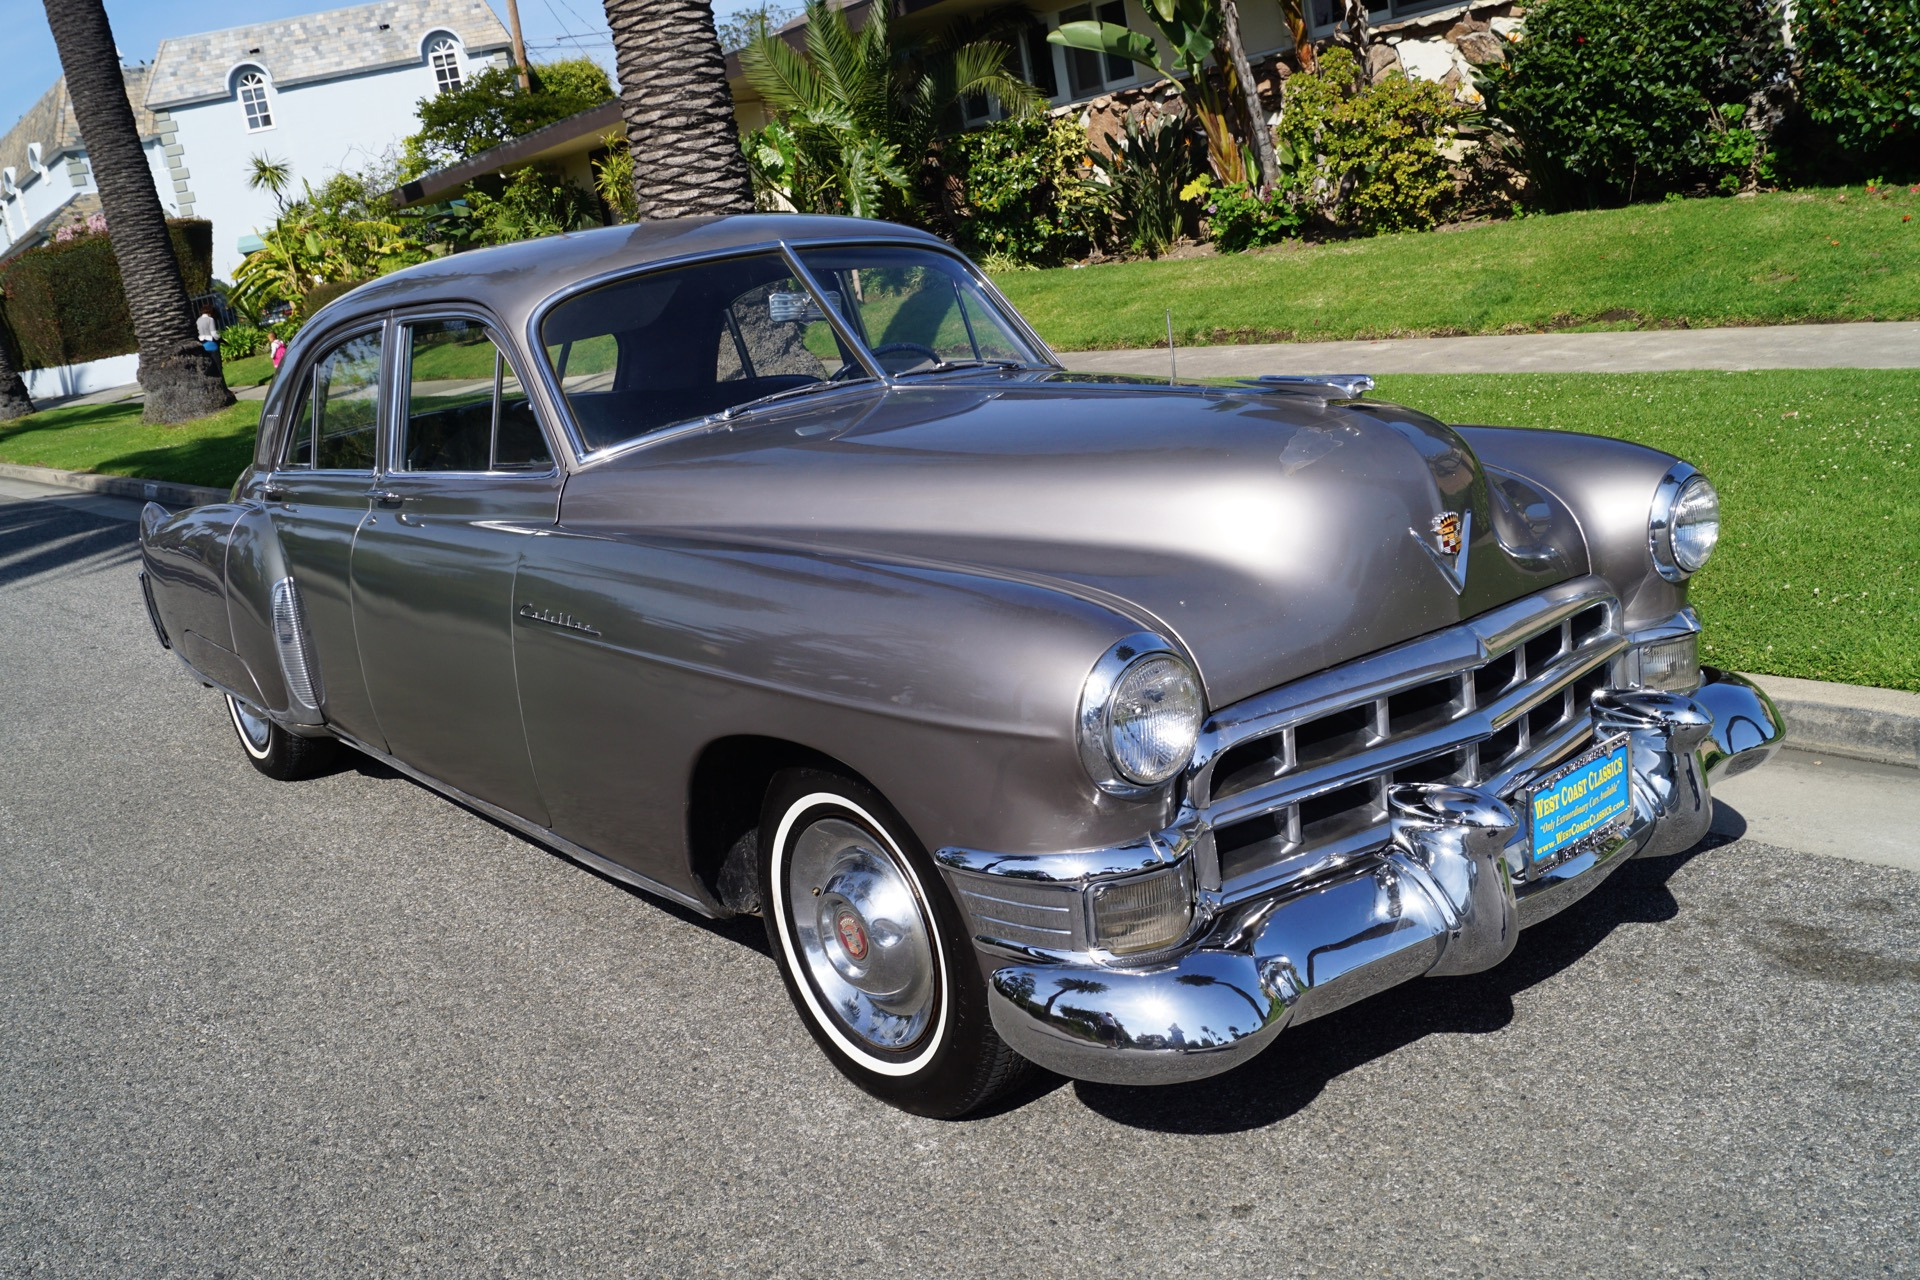 1949 Cadillac Series 60 Fleetwood Stock # 172 for sale ...